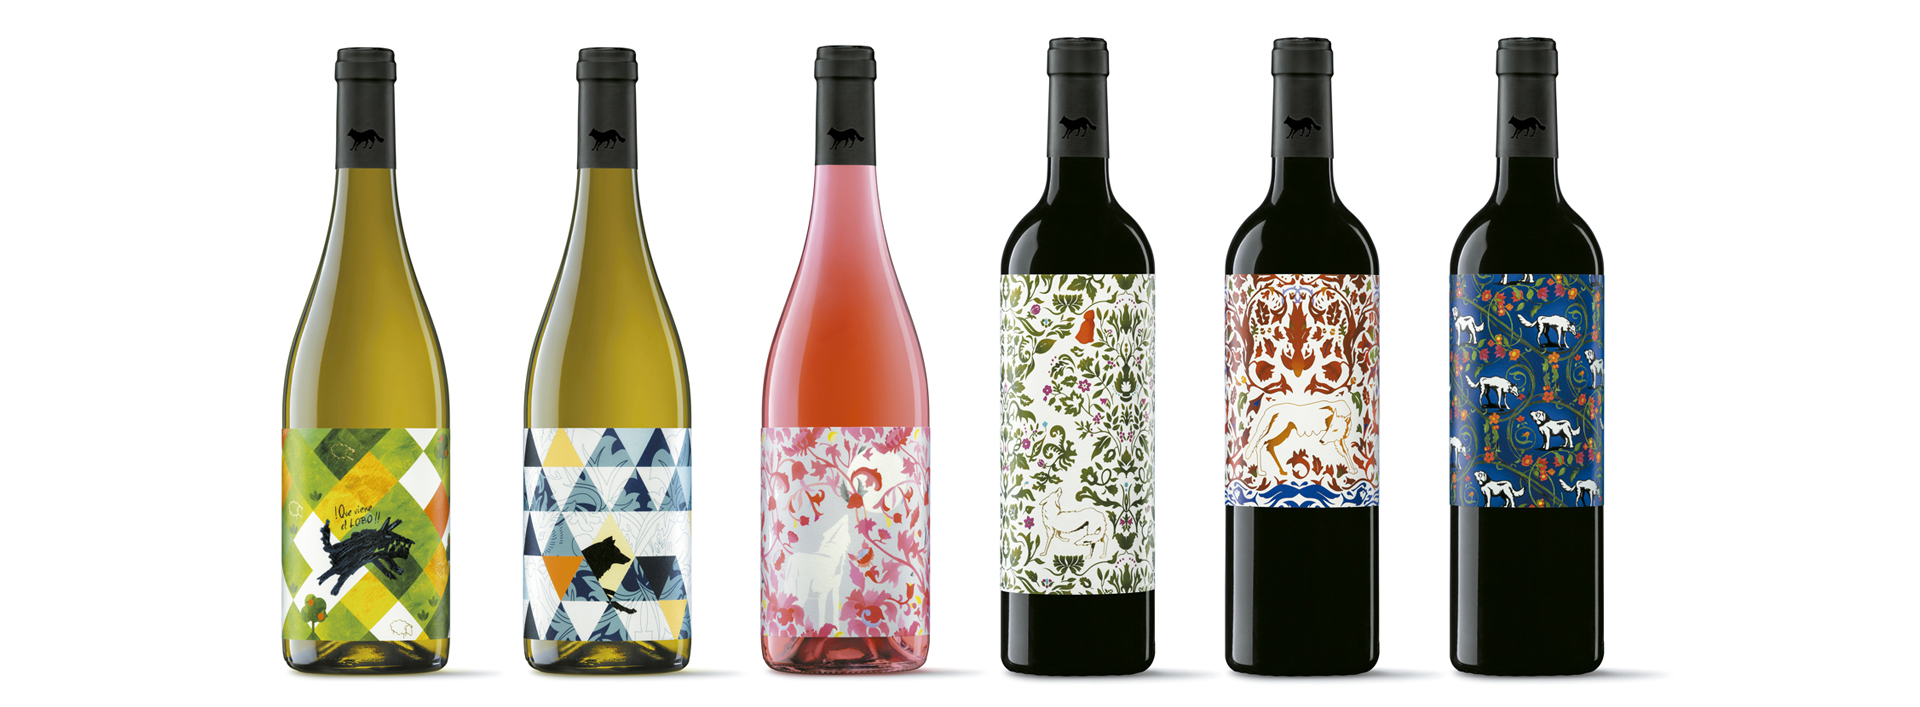 Manada Luparia Packaging Gama Vinos 1920px